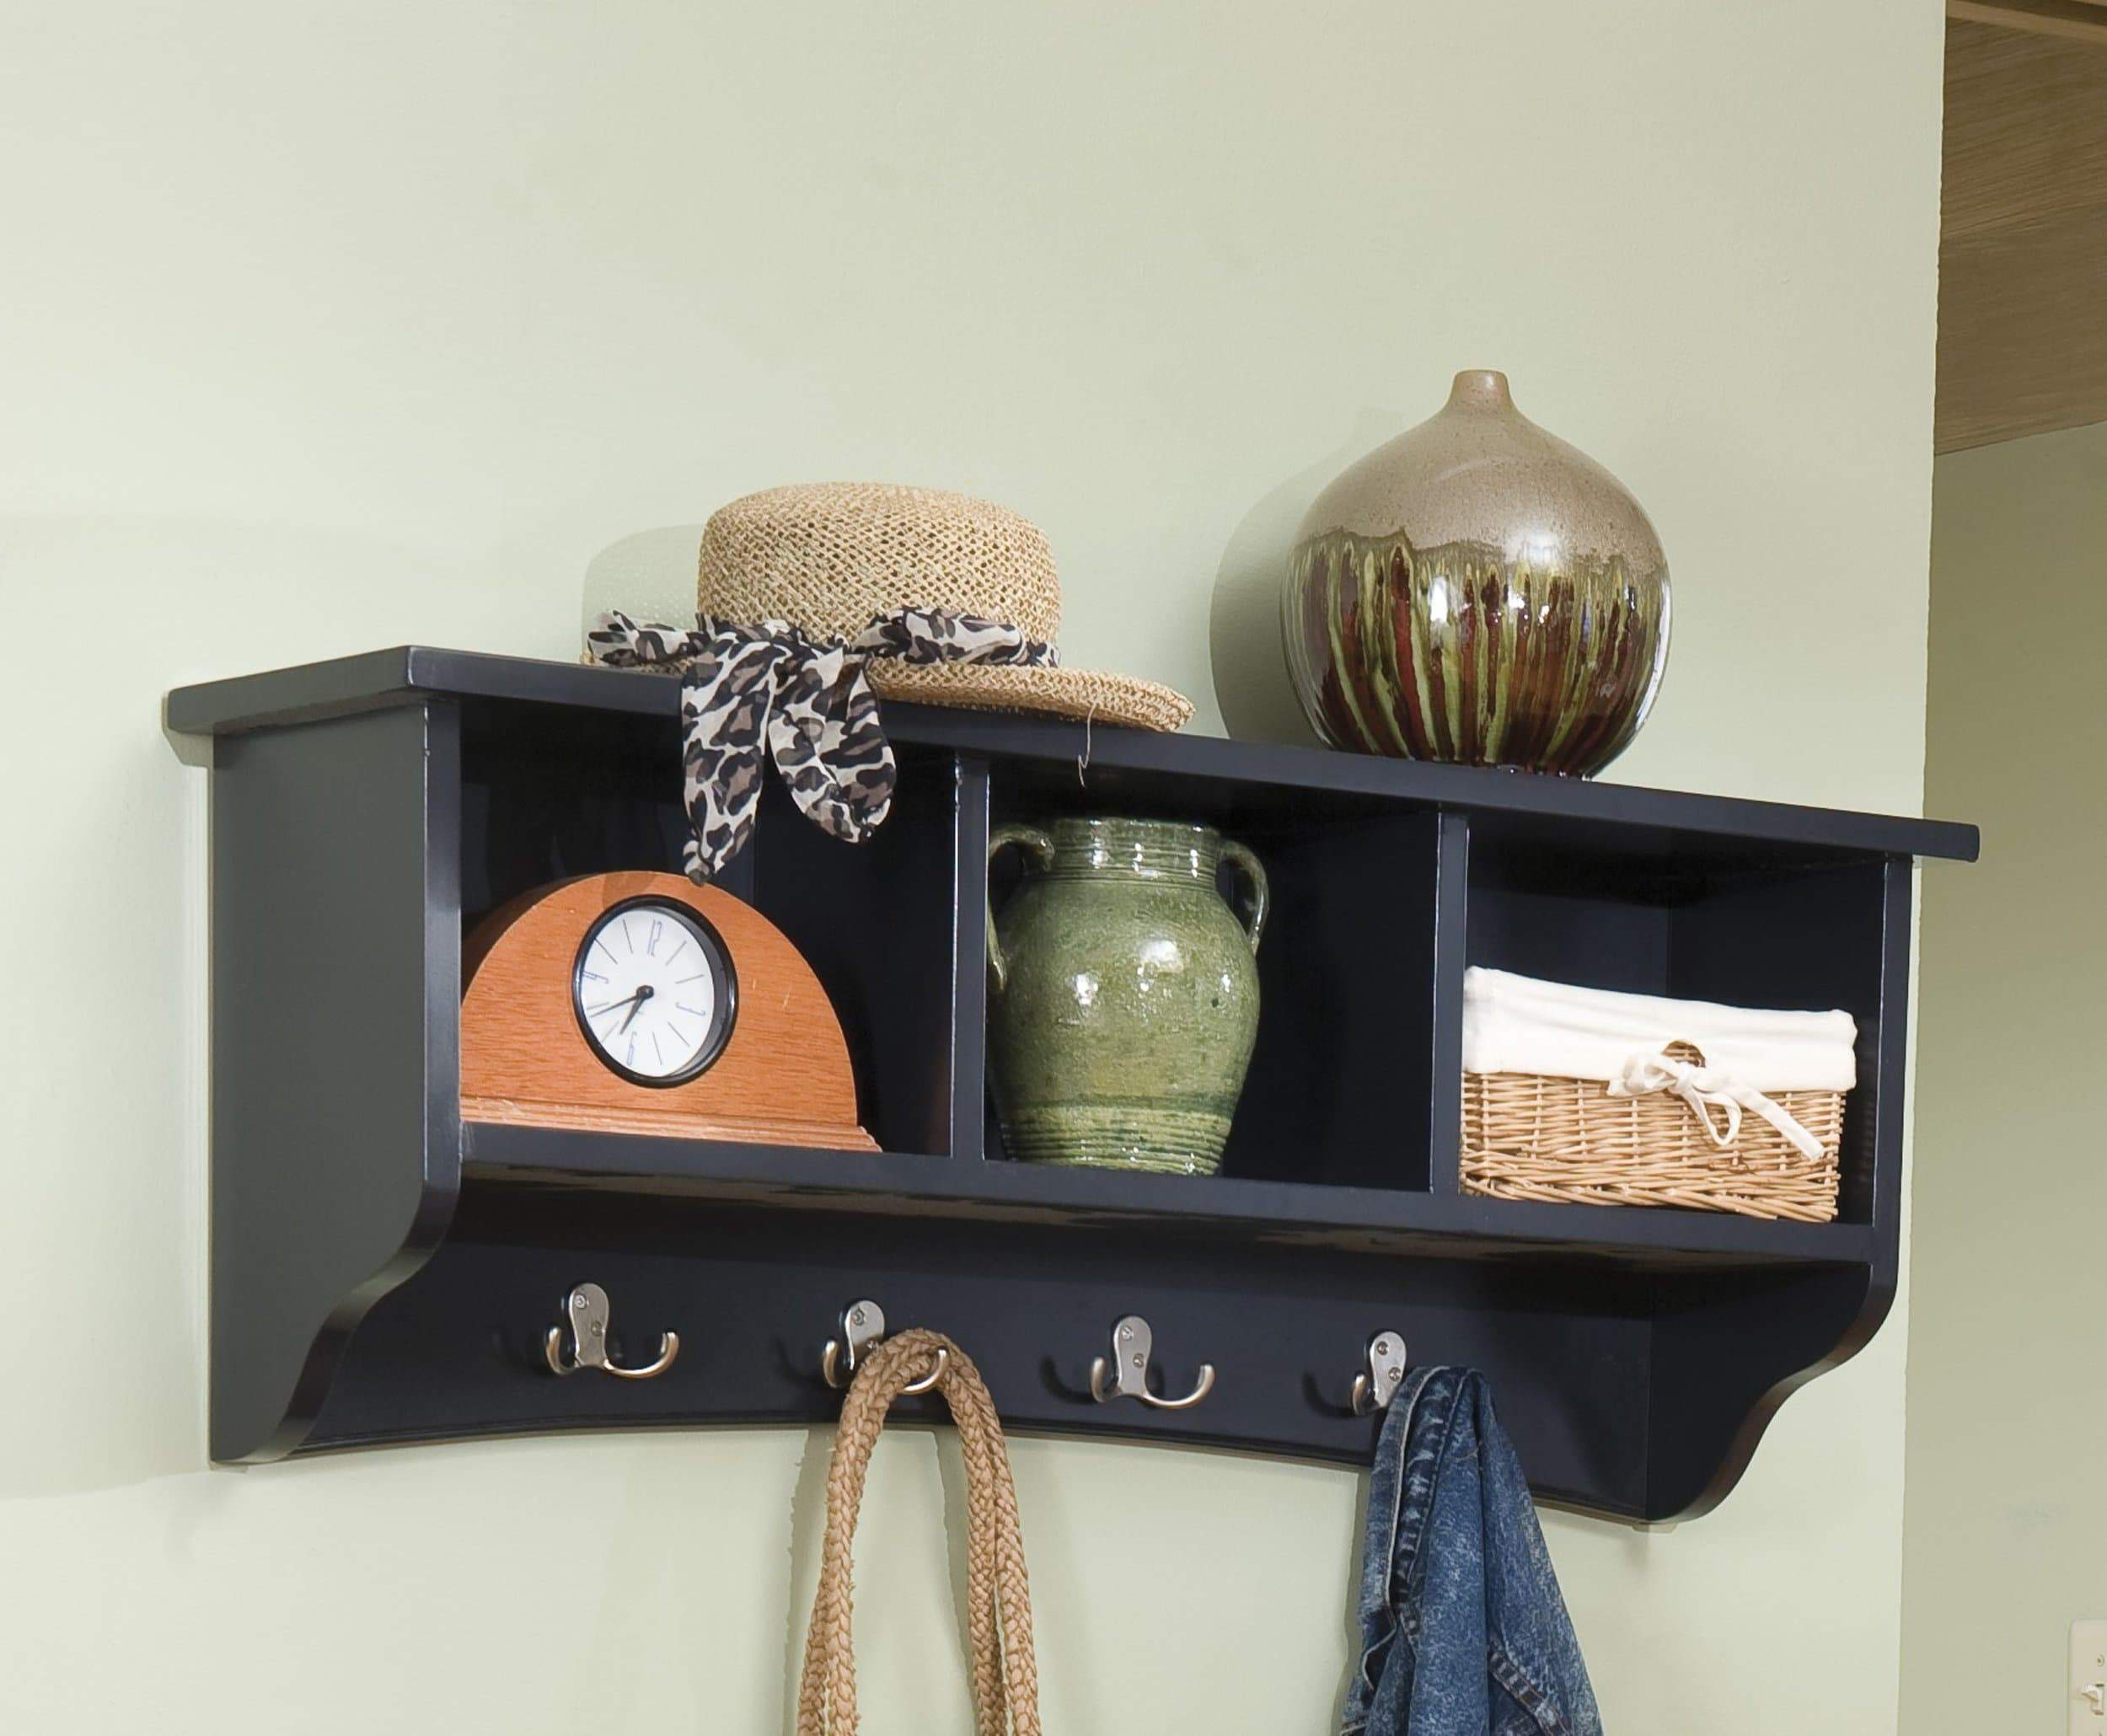 Discover the alaterre shaker cottage wall mounted coat hooks with 3 cubbies charcoal gray